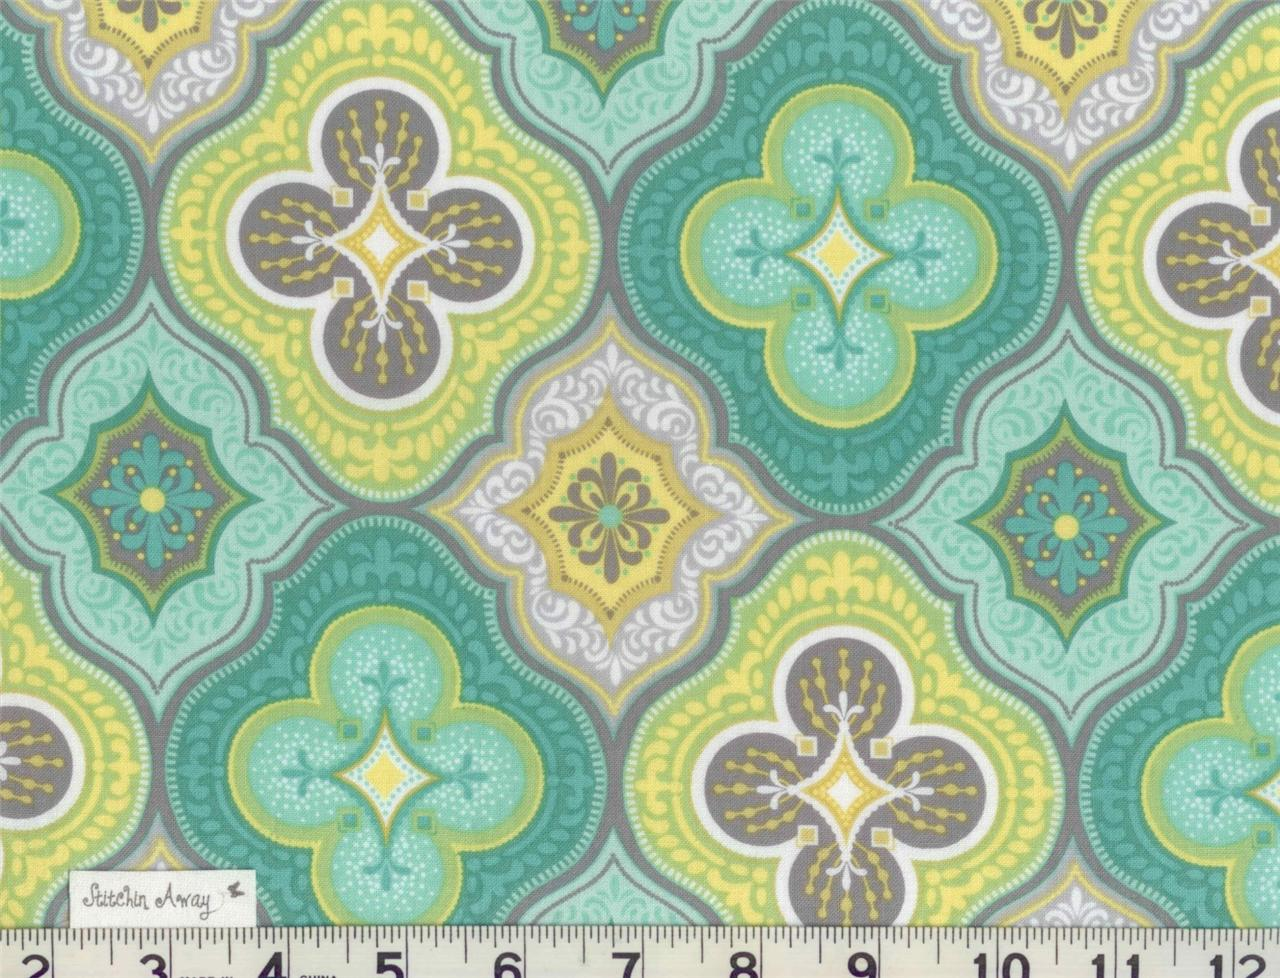 Details about MORRACAN Quilting FABRIC 100% Cotton Gray, Aqua, Lime ...